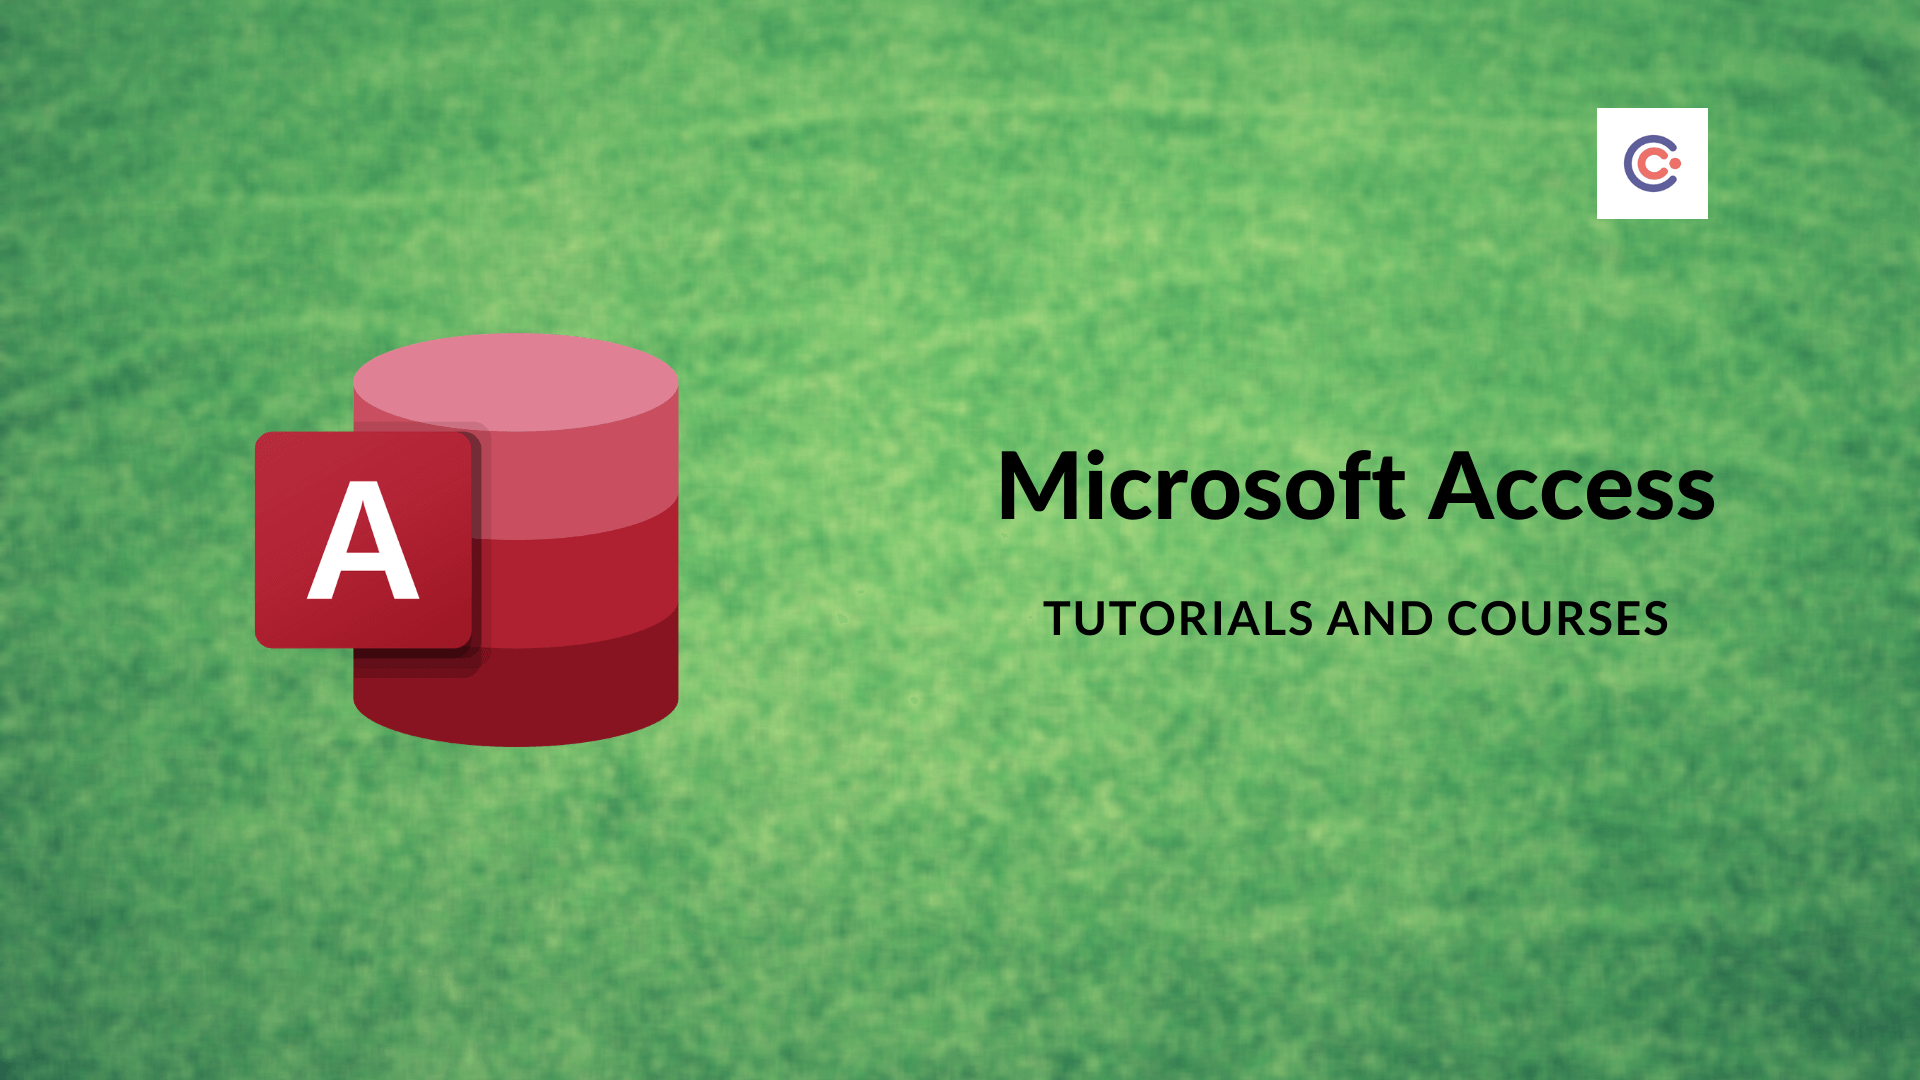 8 Best Microsoft Access Tutorials and Courses - Learn Microsoft Access Online